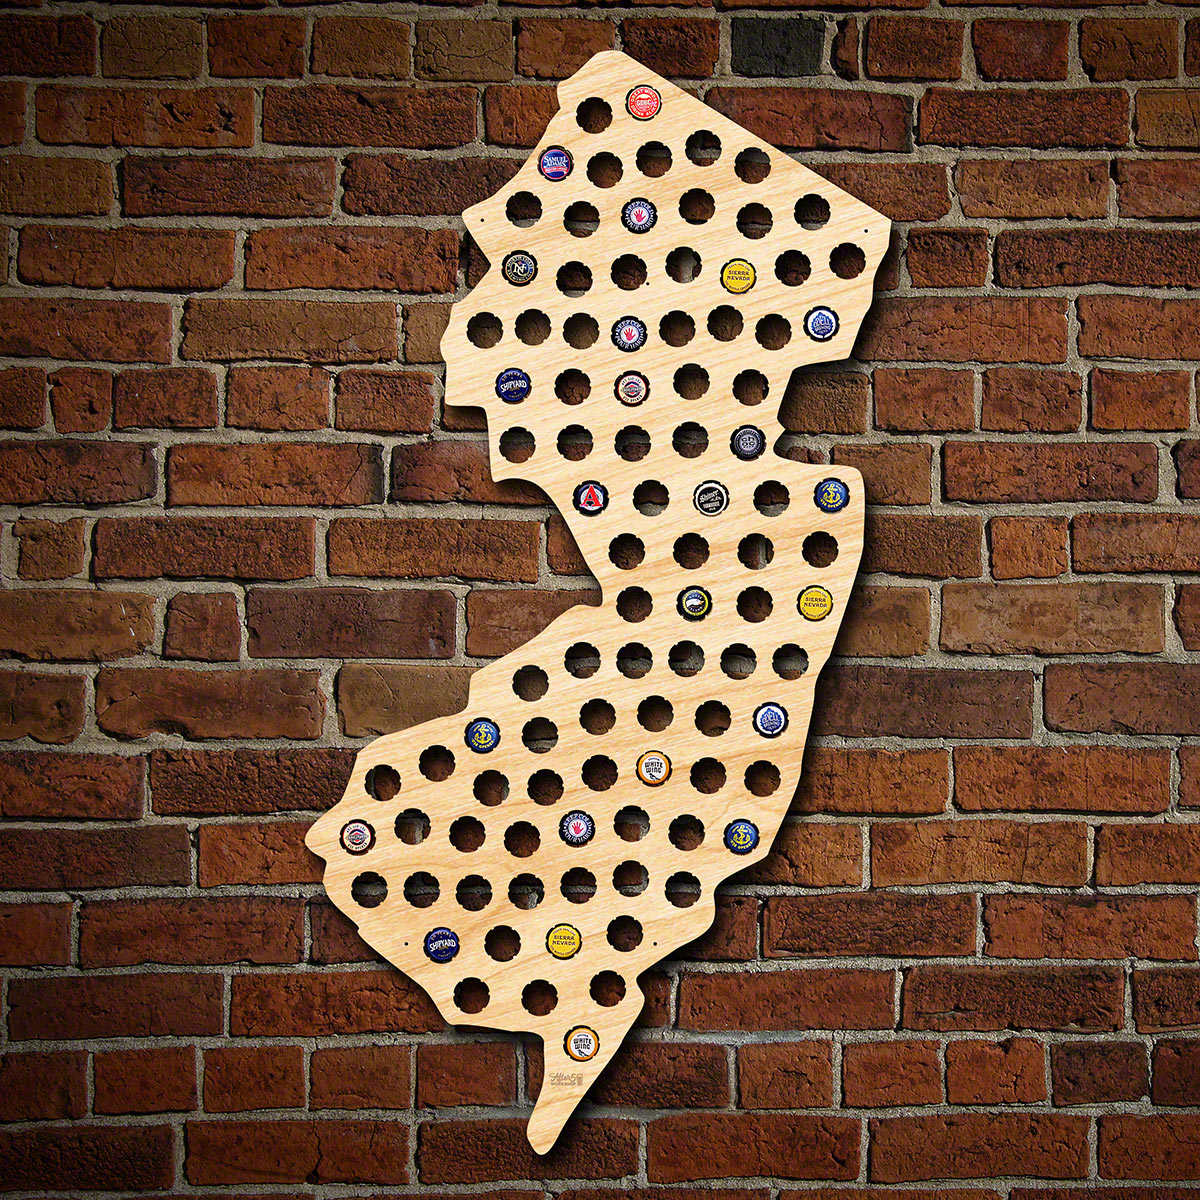 Giant-XL-New-Jersey-Beer-Cap-Map